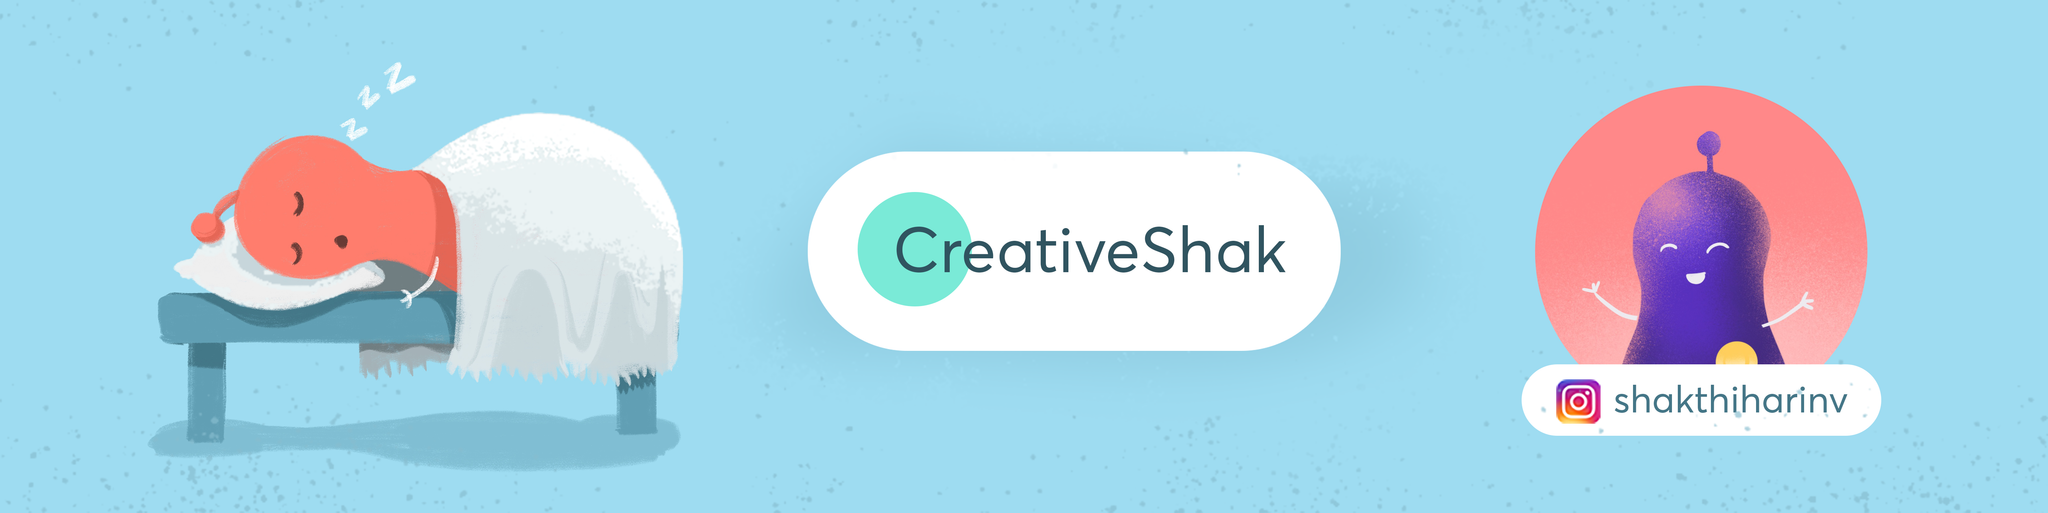 creativeshak in collaboration with Instanote